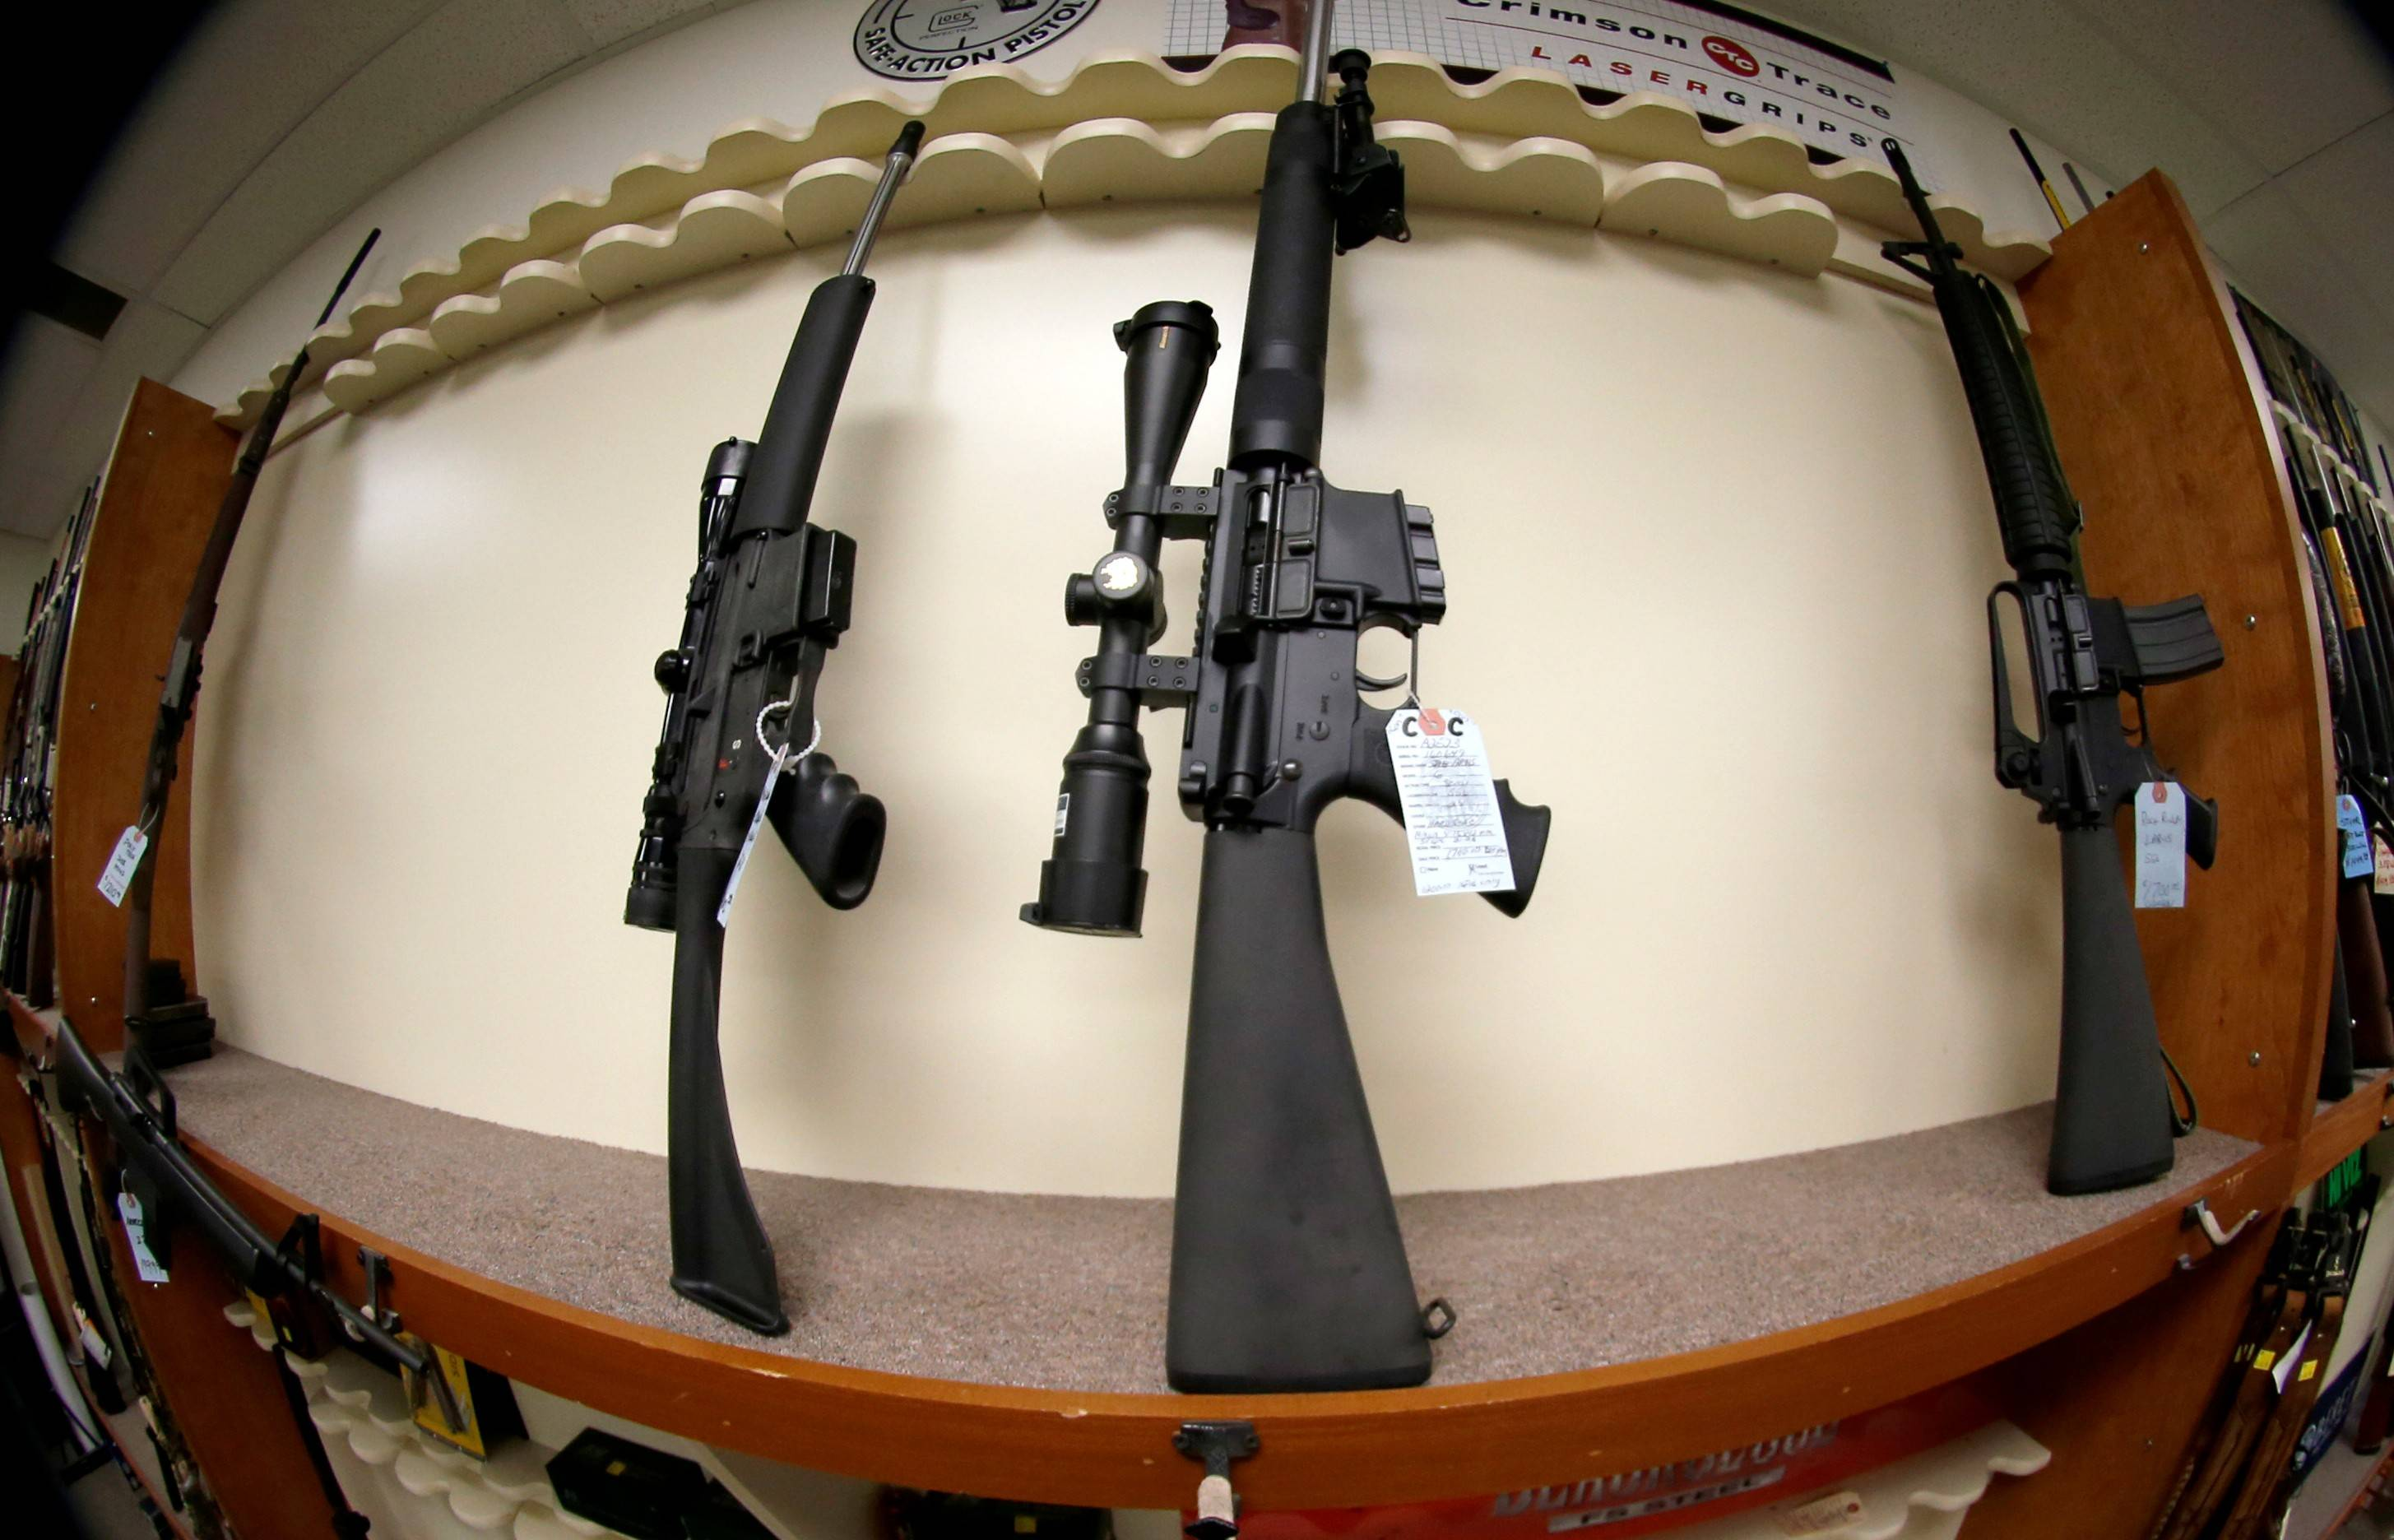 Gun owners oppose proposal to ban assault weapons